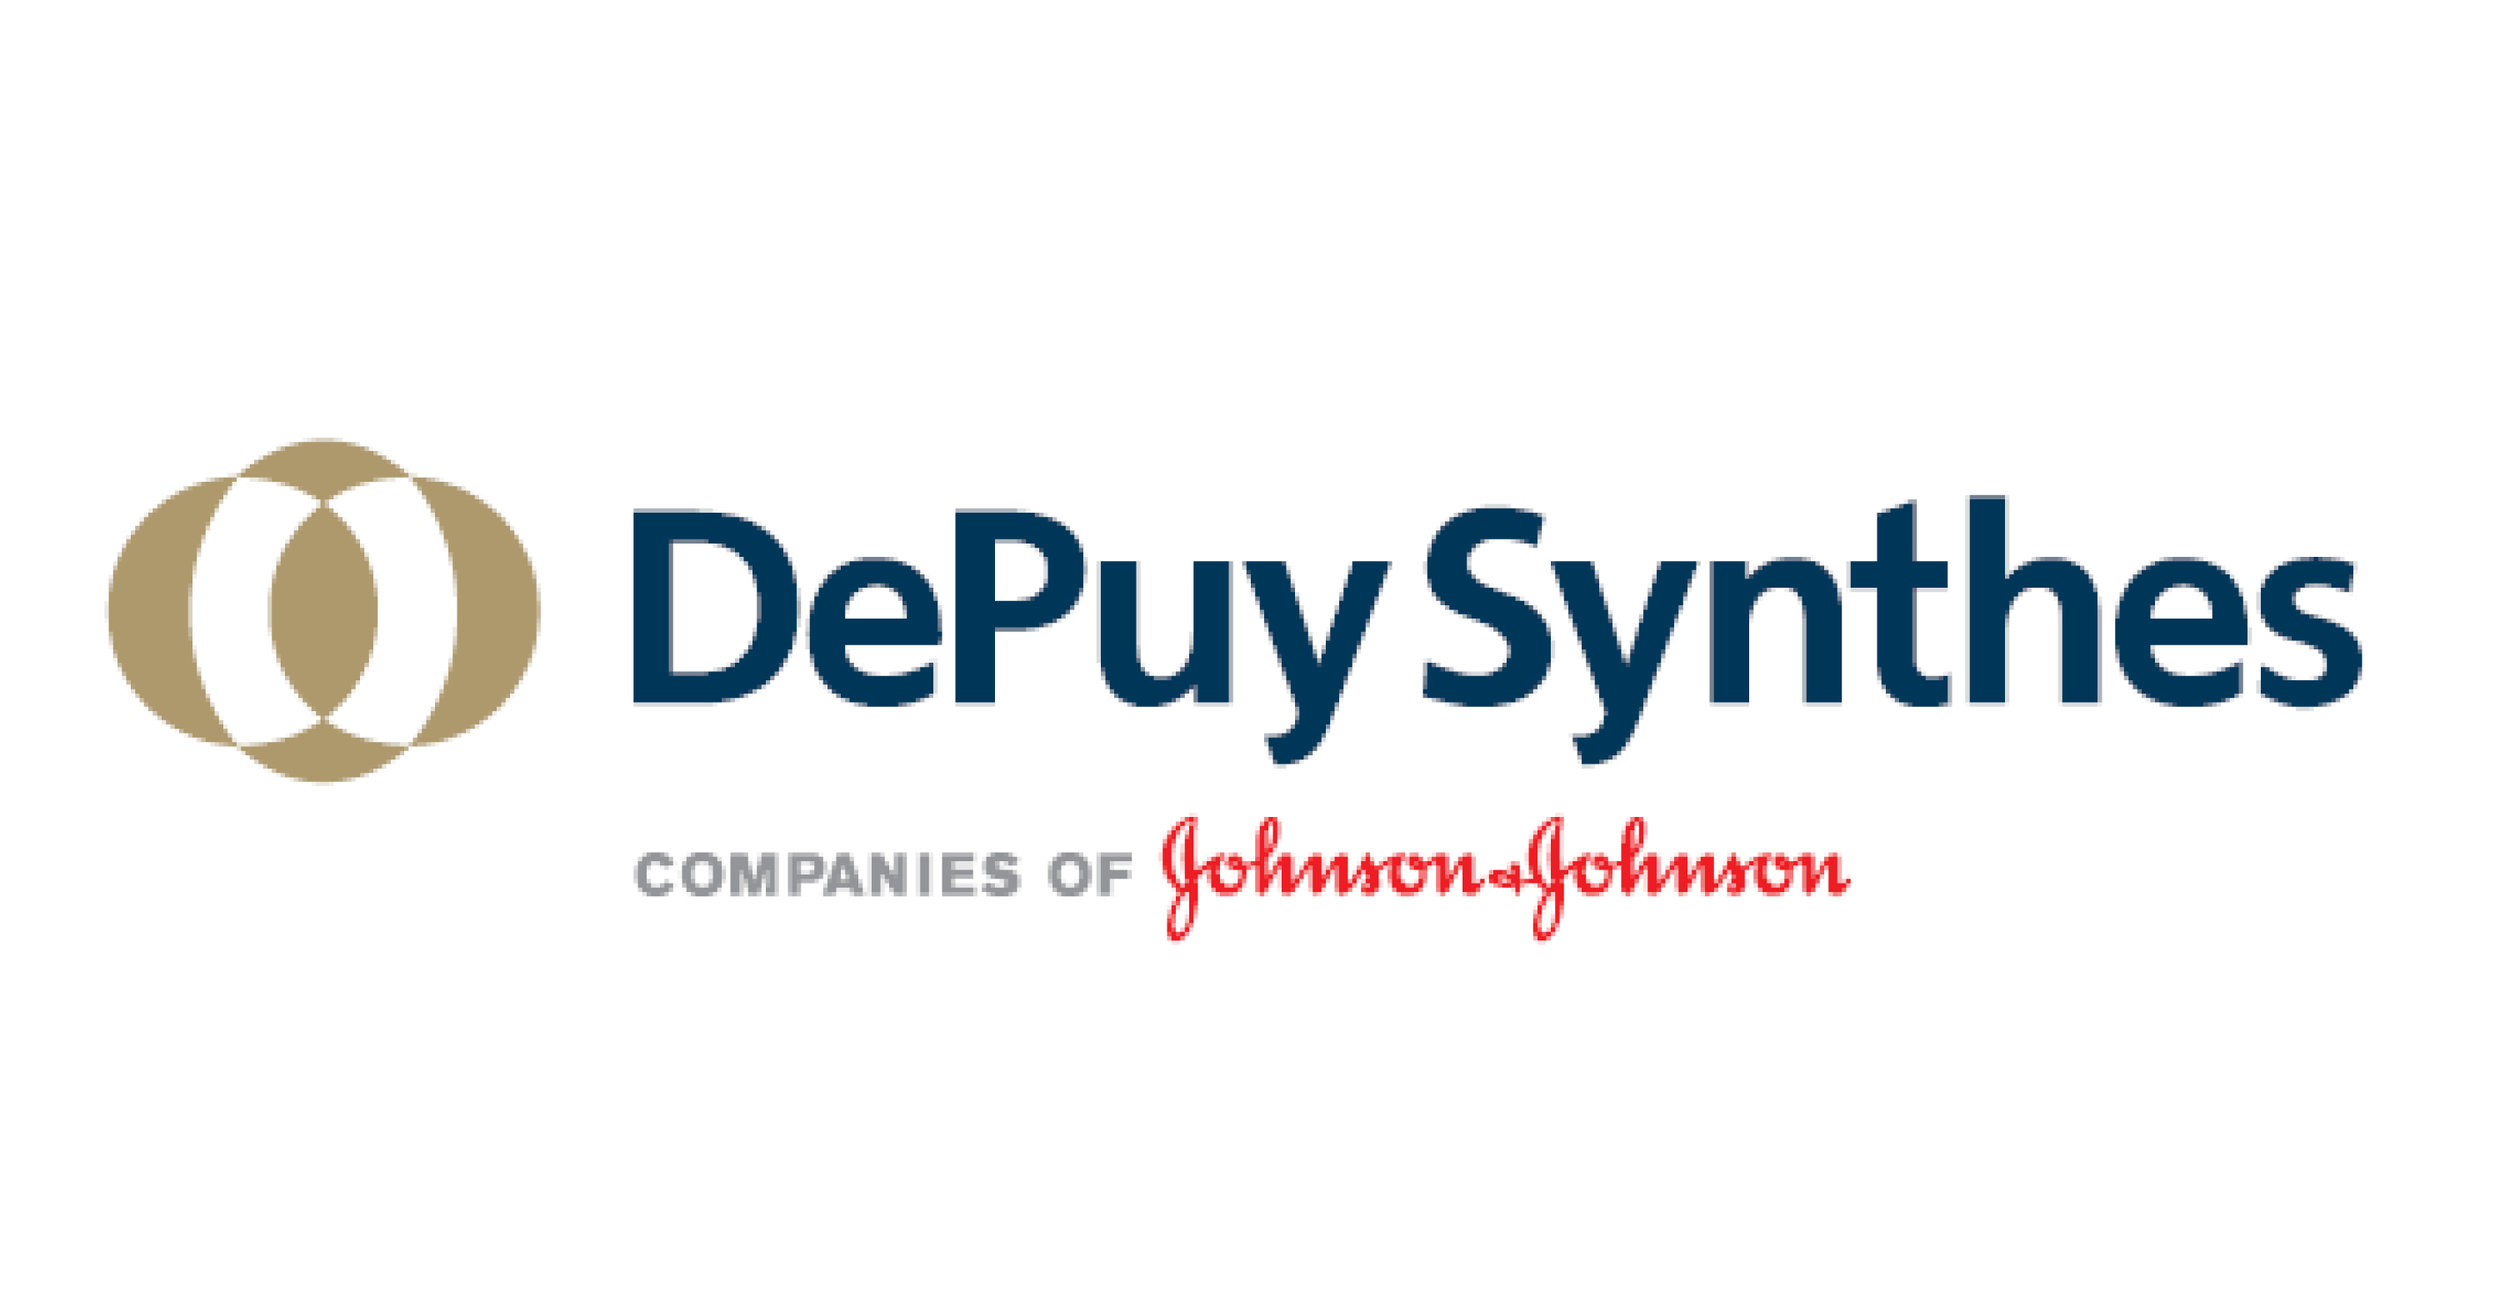 18-Squarespace-Work_Experience-Logos-Depuy Synthes.jpg